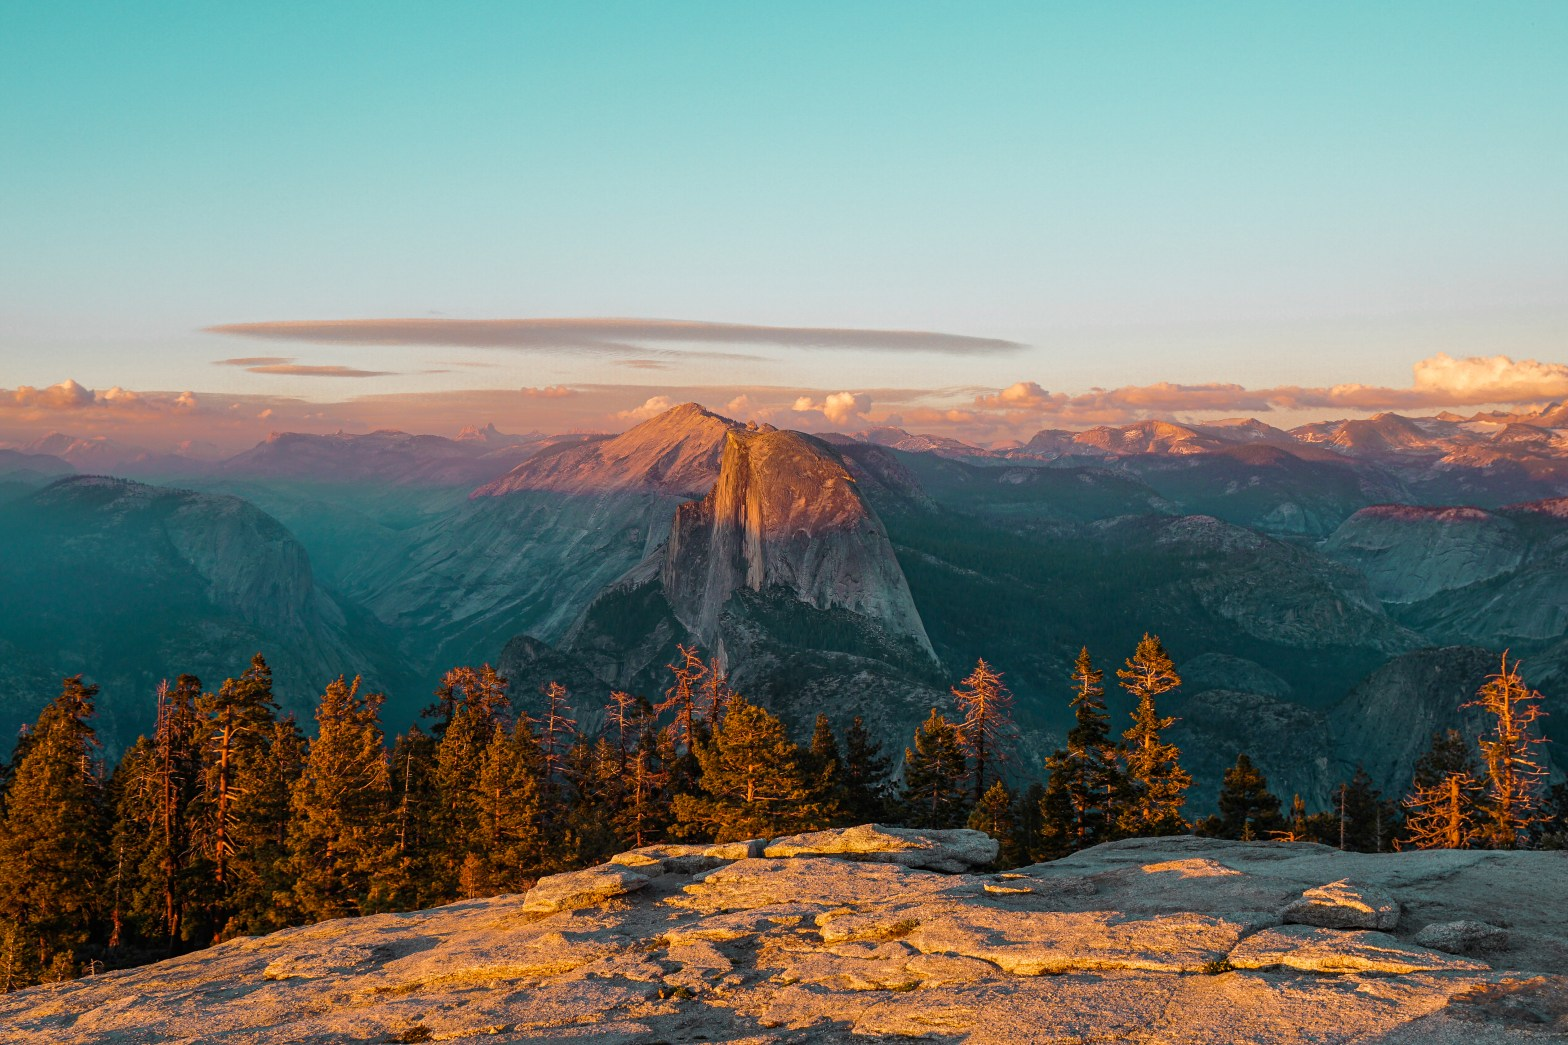 View of Half Dome from the top of Sentinel Dome in Yosemite at sunset